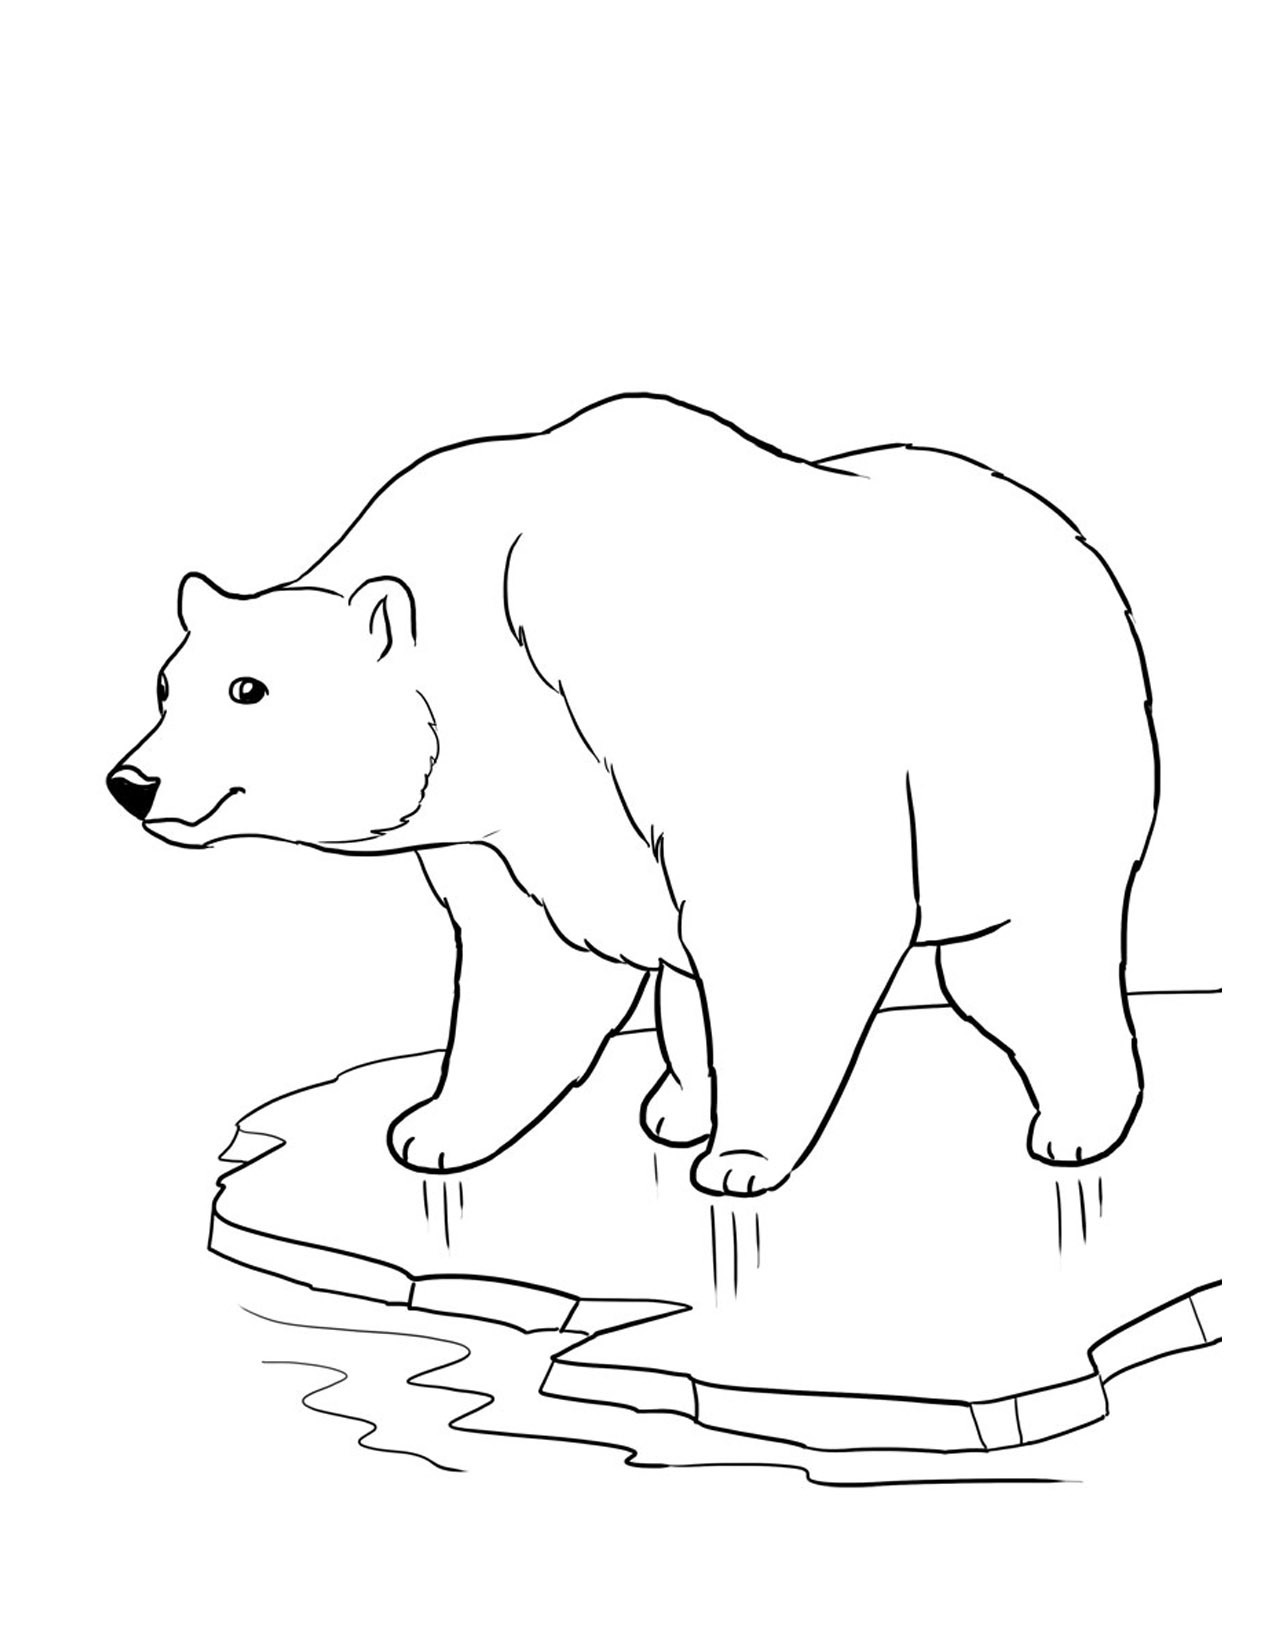 Polar Bear Coloring Sheet  Free Printable Bear Coloring Pages For Kids